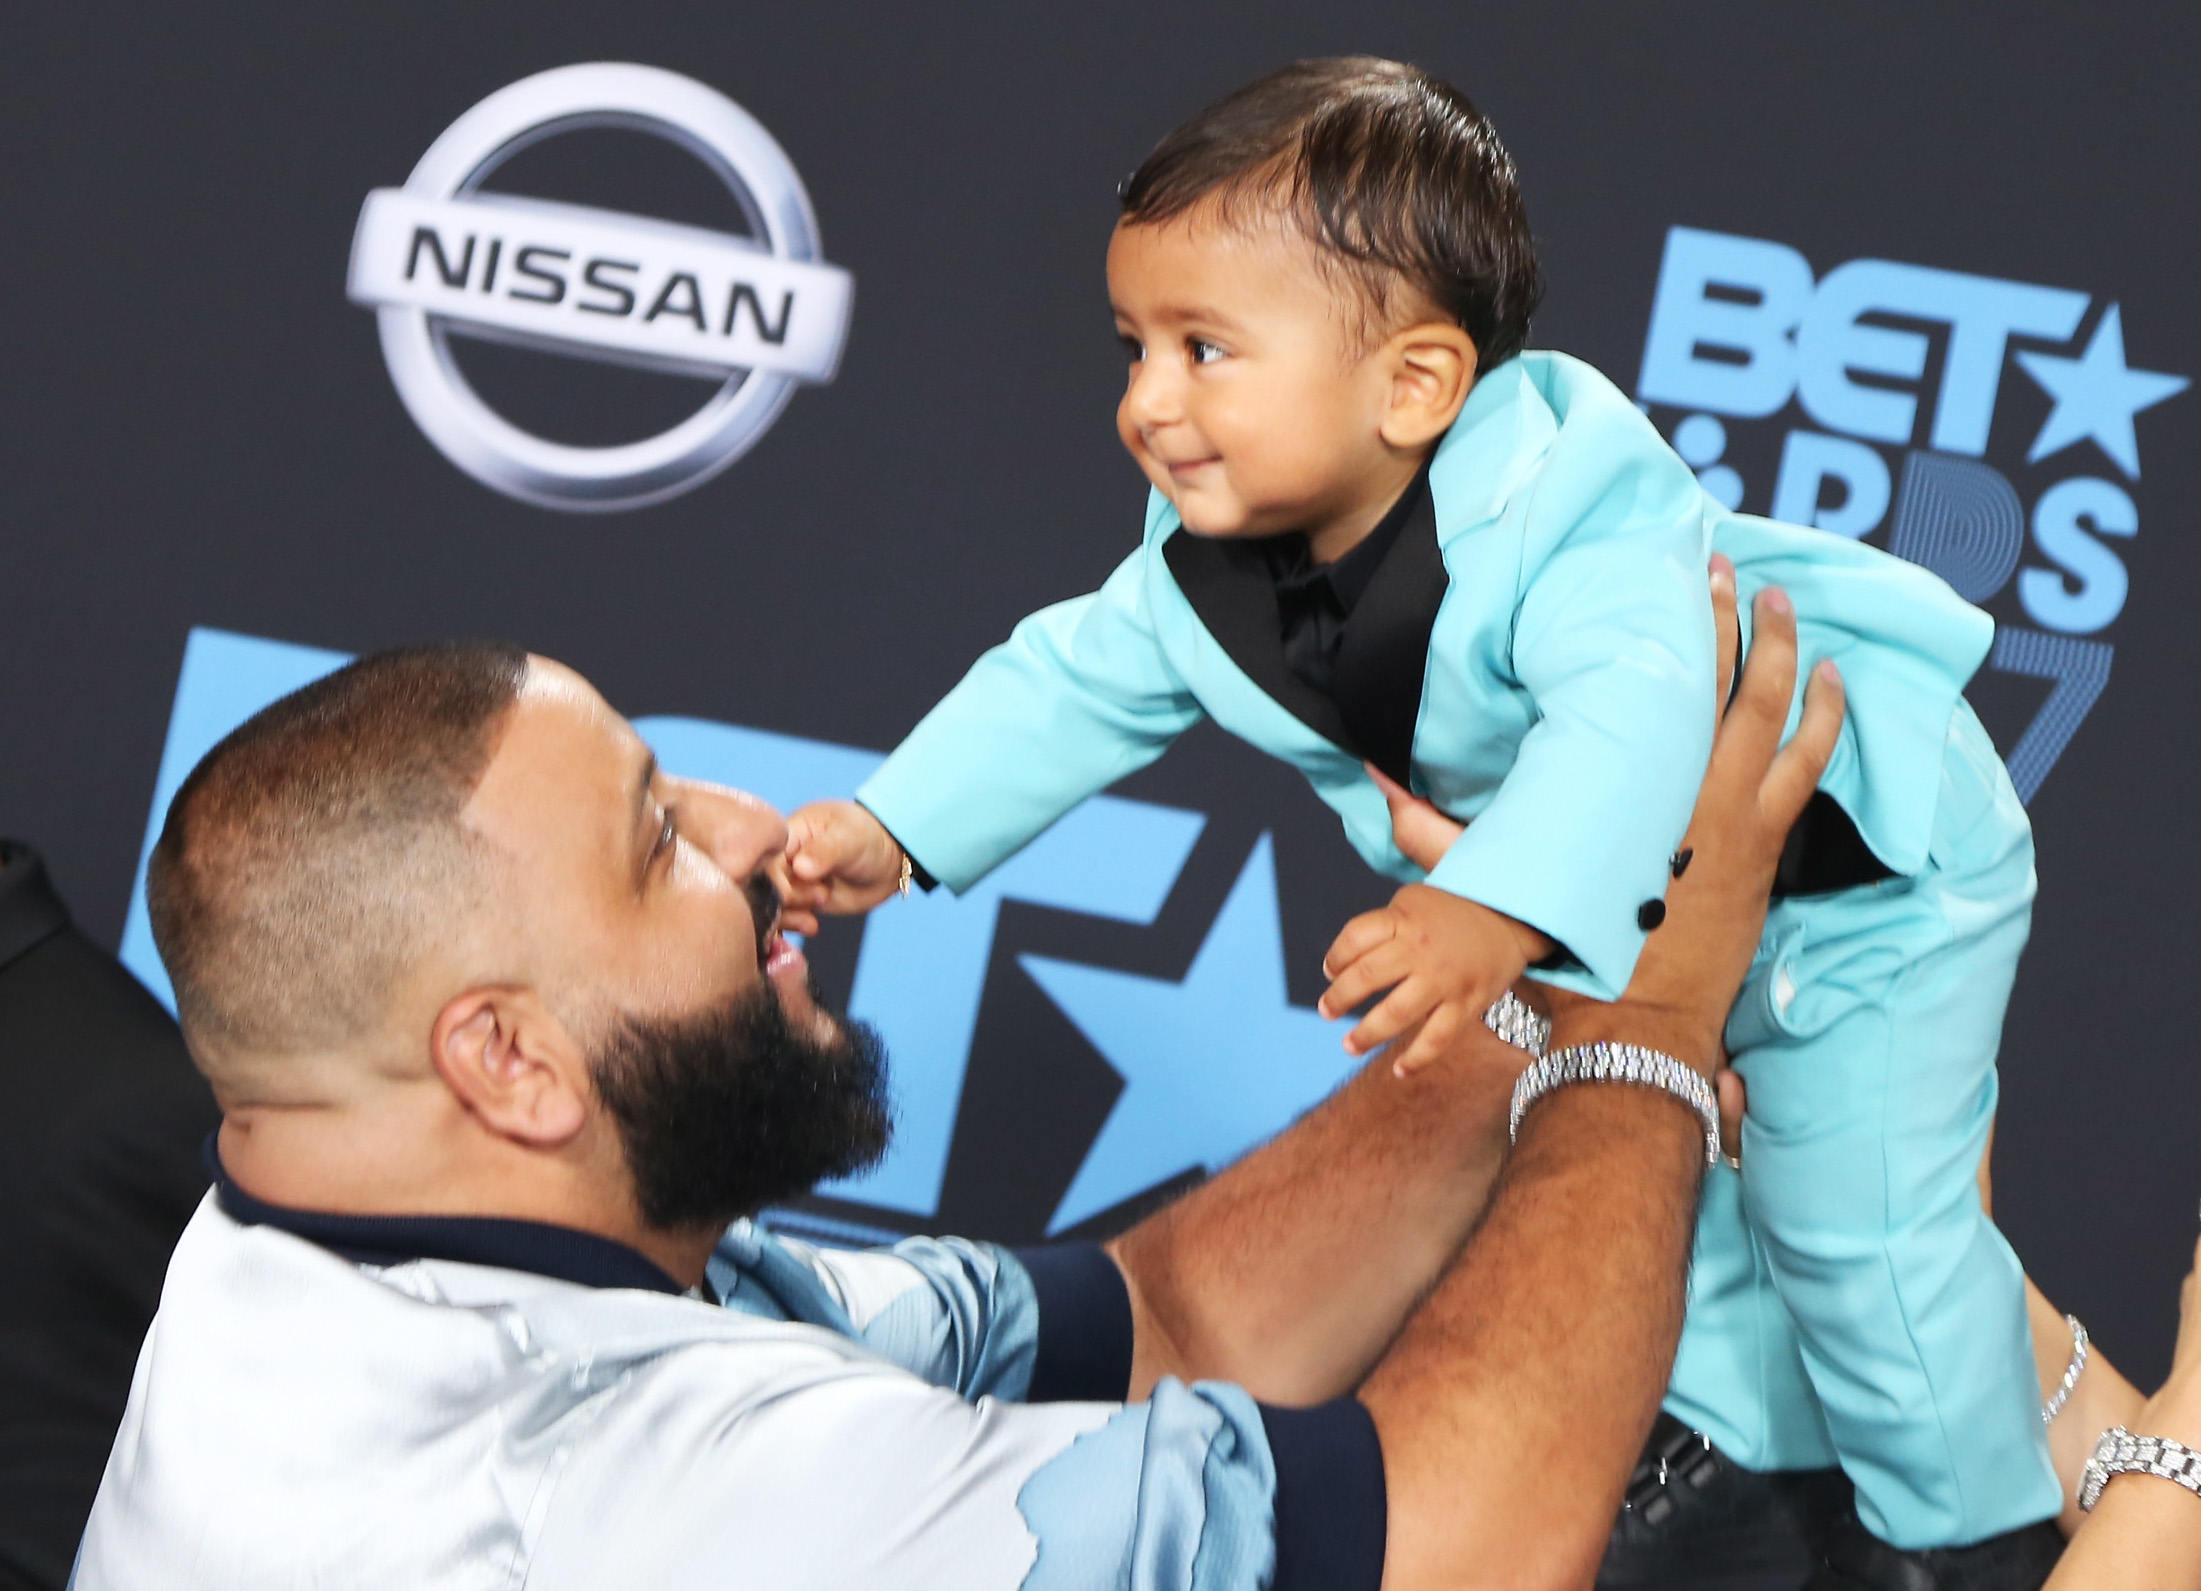 LOS ANGELES, CA - JUNE 25:  DJ Khaled (L) and Asahd Tuck Khaled at the 2017 BET Awards at Microsoft Square on June 25, 2017 in Los Angeles, California.  (Photo by Maury Phillips/Getty Images)